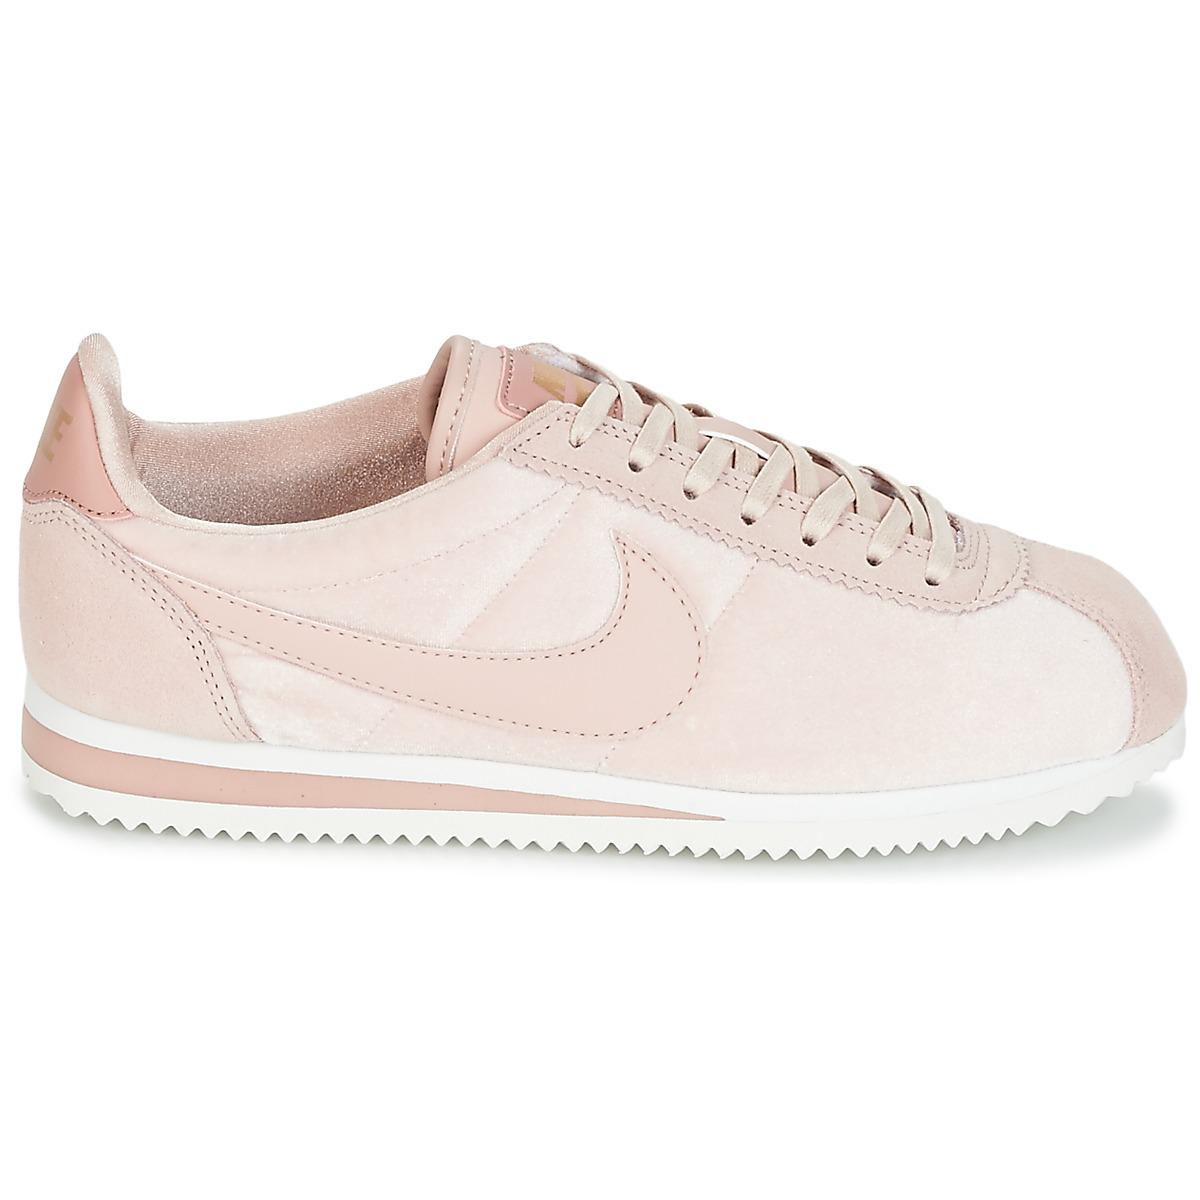 Nike Classic Cortez Suede W Women's Shoes (trainers) In Pink